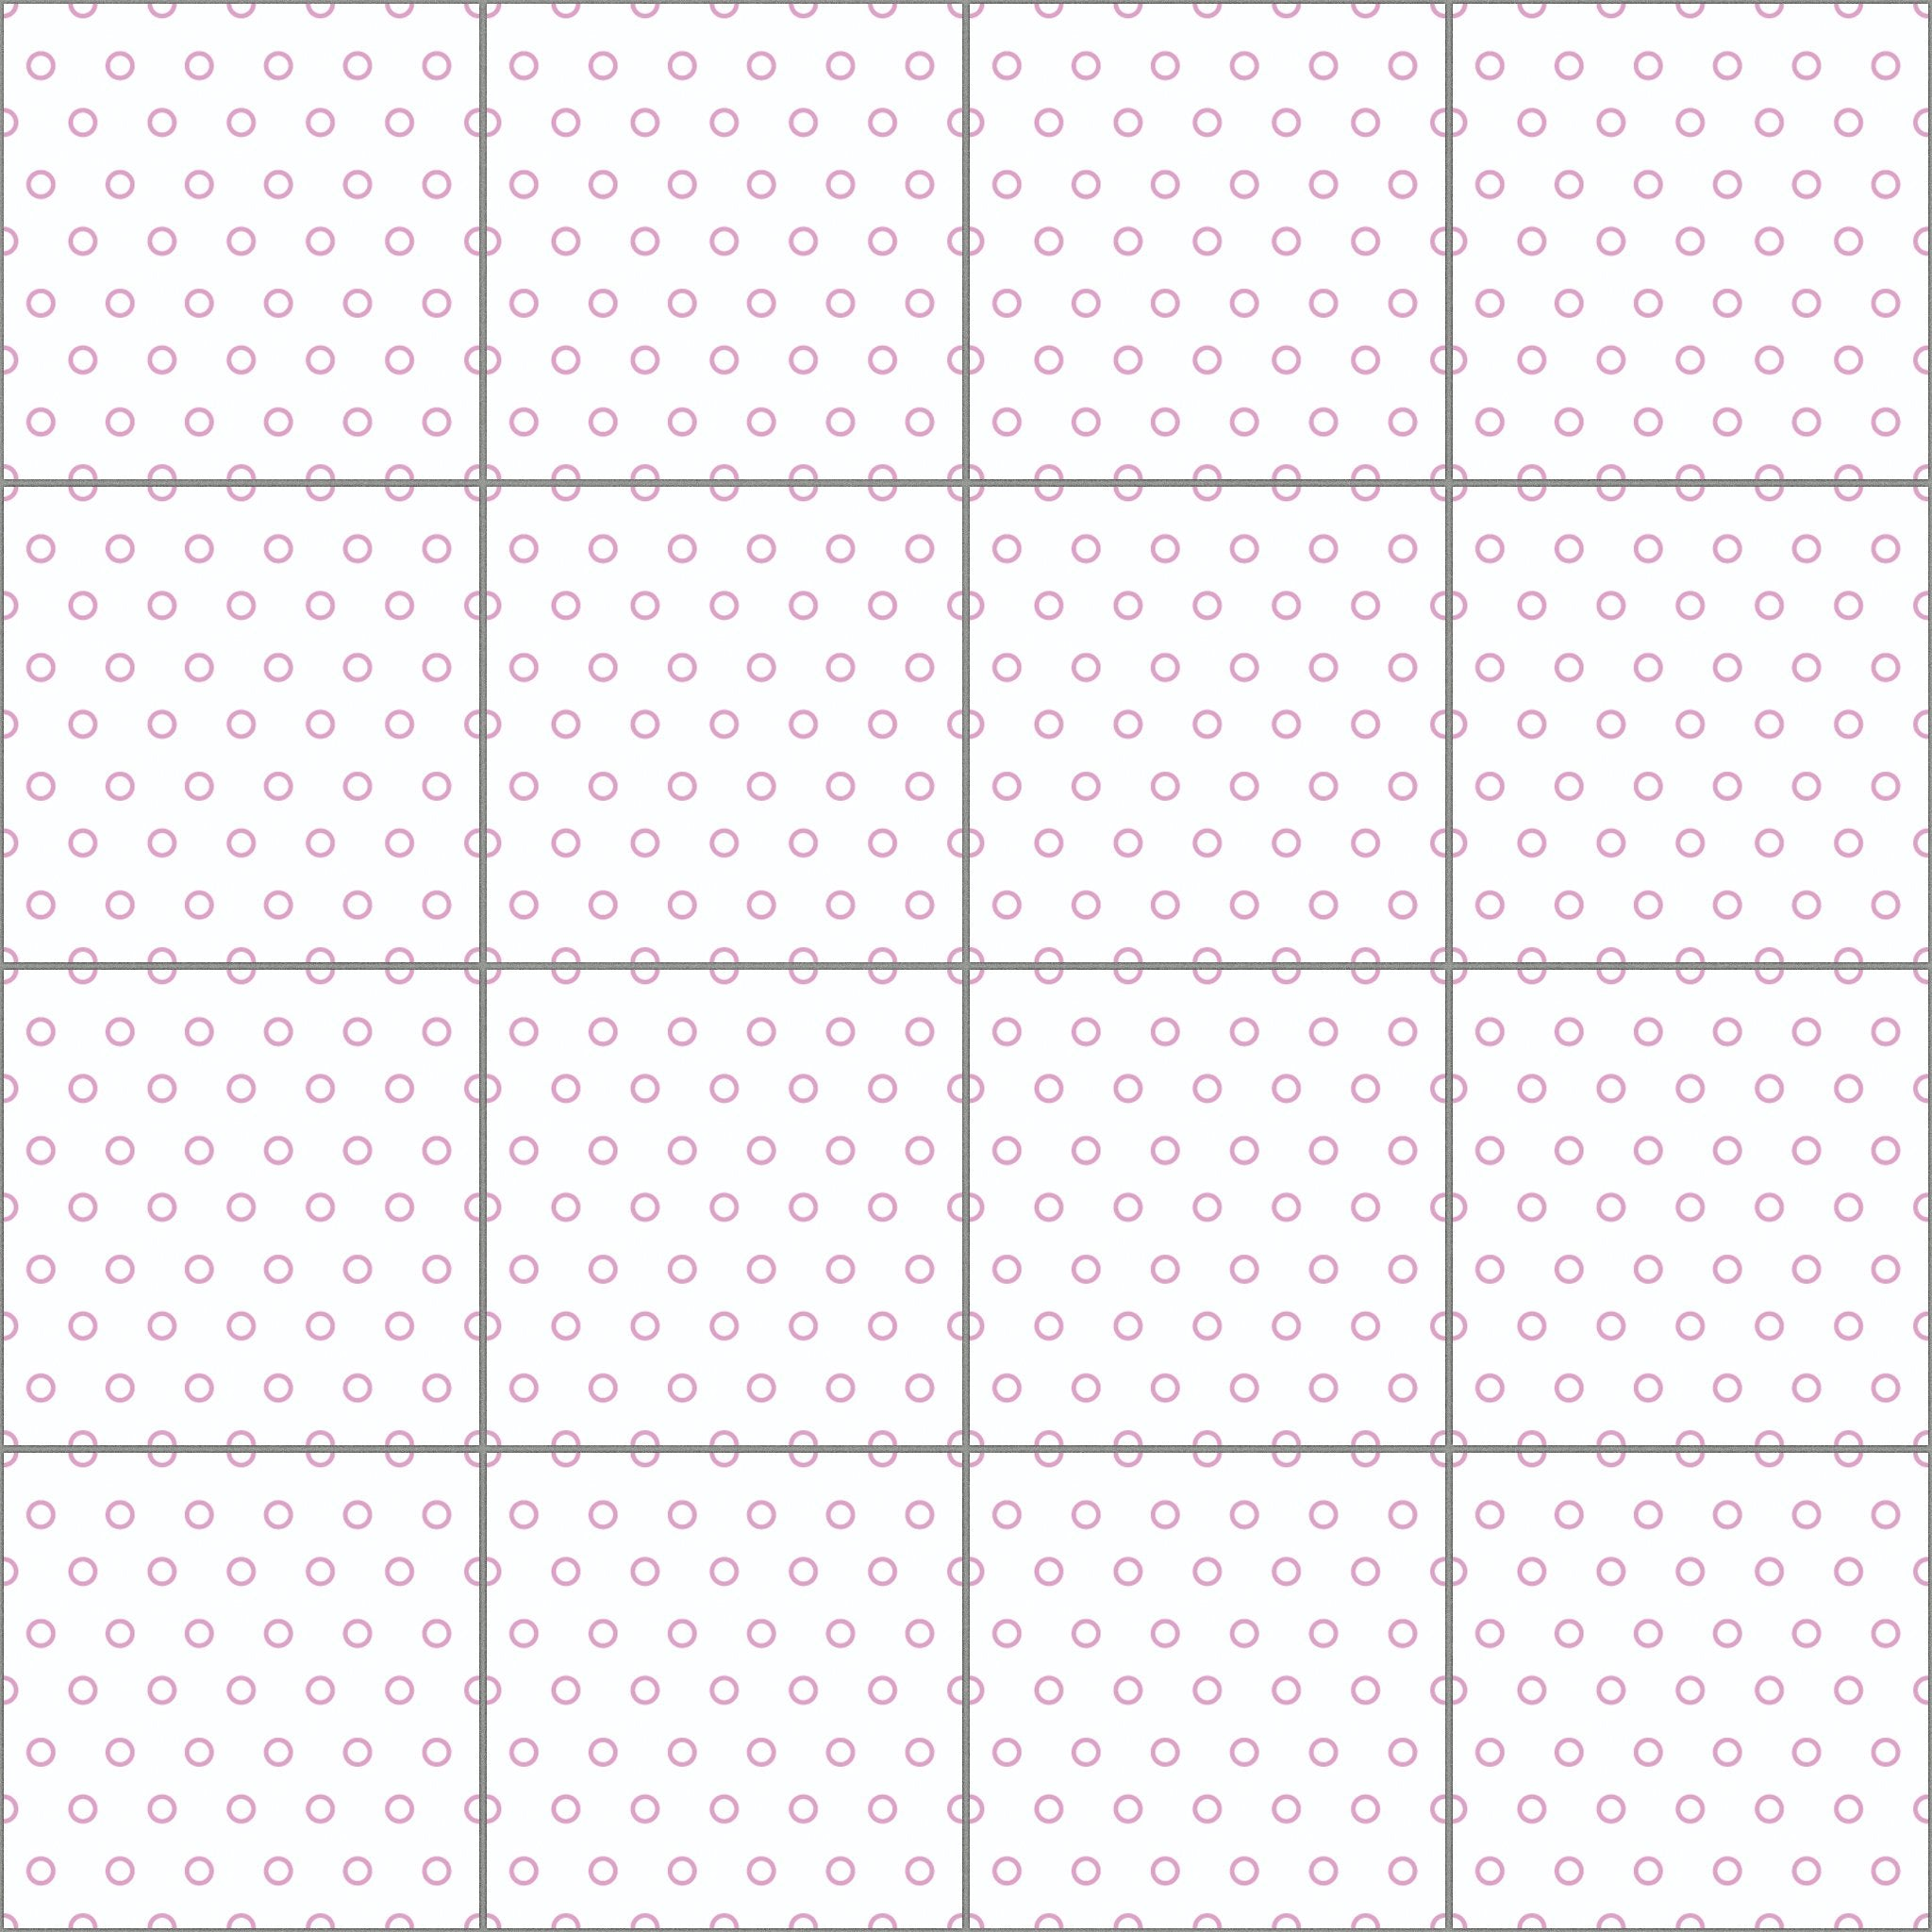 Tile stickers - KP003